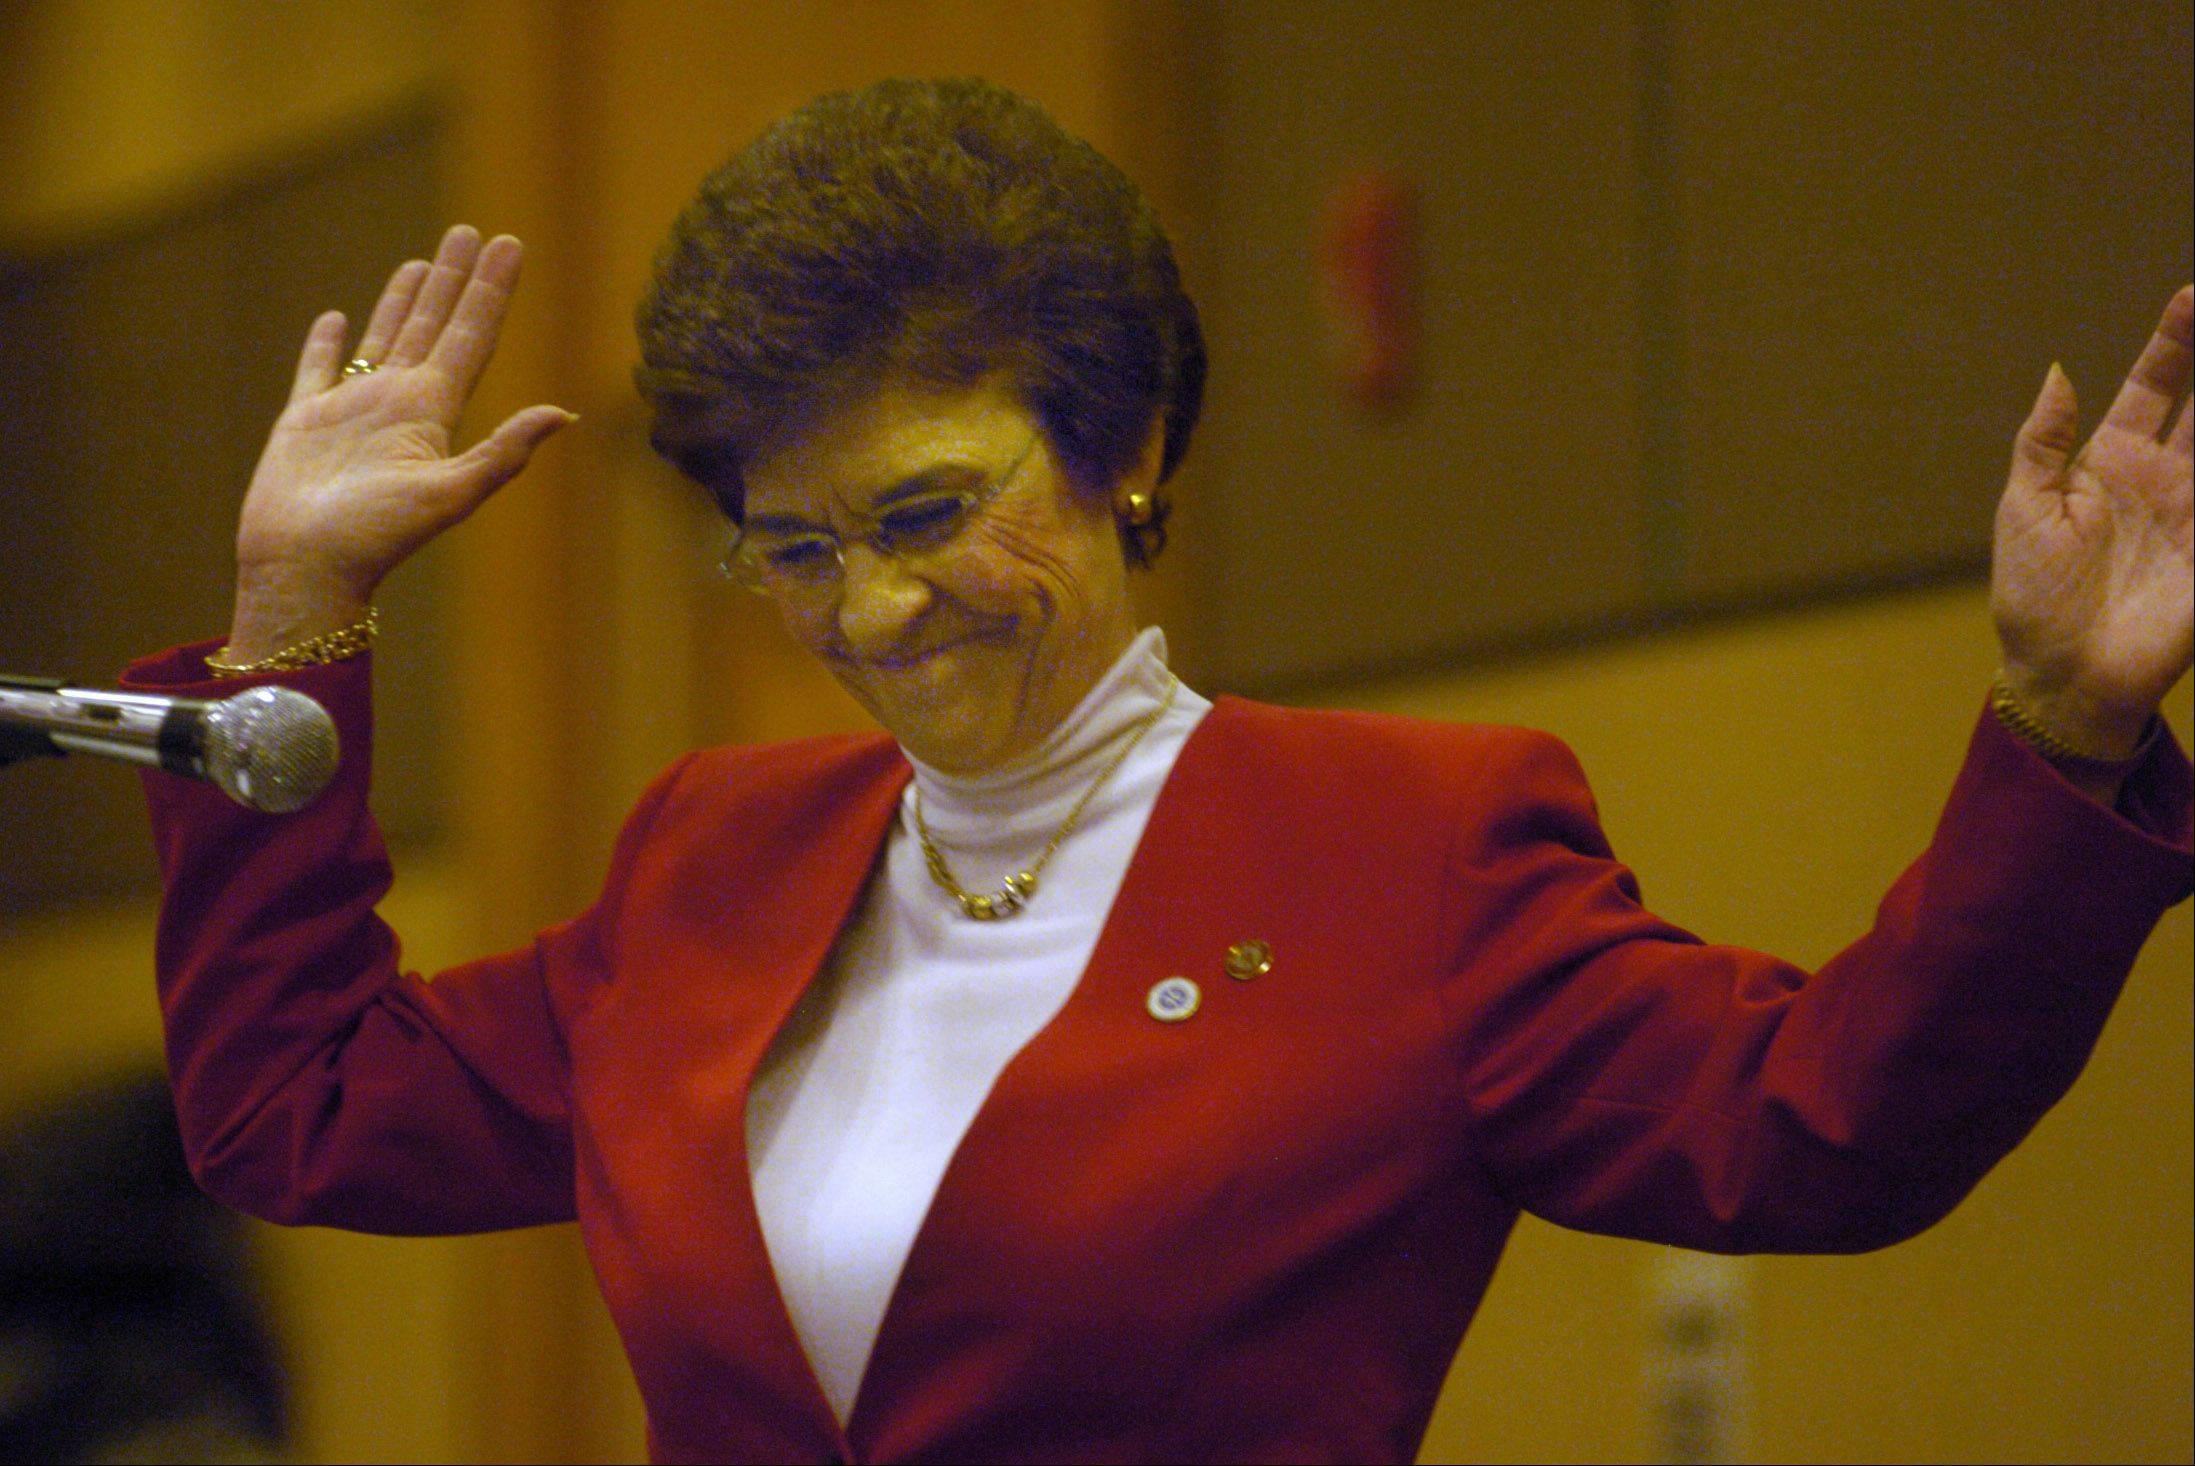 Arlington Heights Mayor Arlene Mulder is applauded Thursday after being introduced at her final Mayor's 26th annual Community Prayer Breakfast. Mulder, who's presided over the event for 20 years, is retiring in April.